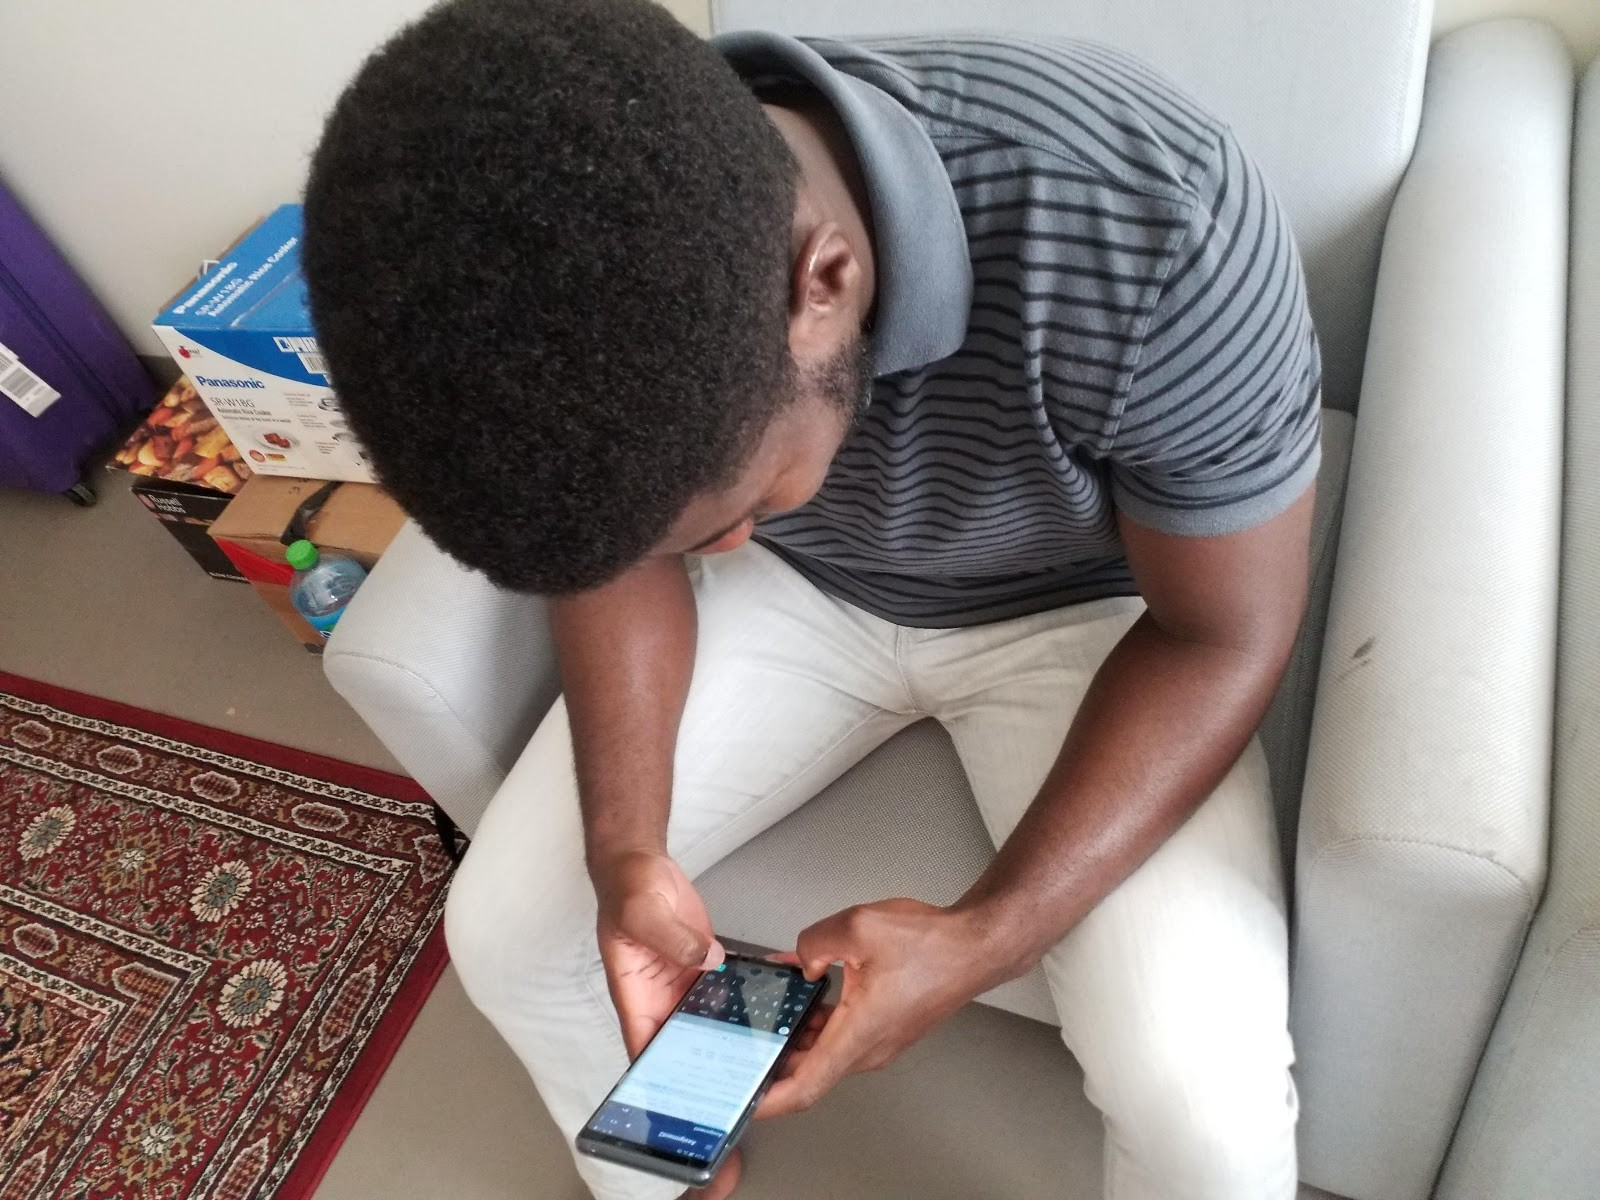 A young African man holds his smartphone. The screen shows a coding window. He leans over it and types with his thumbs.